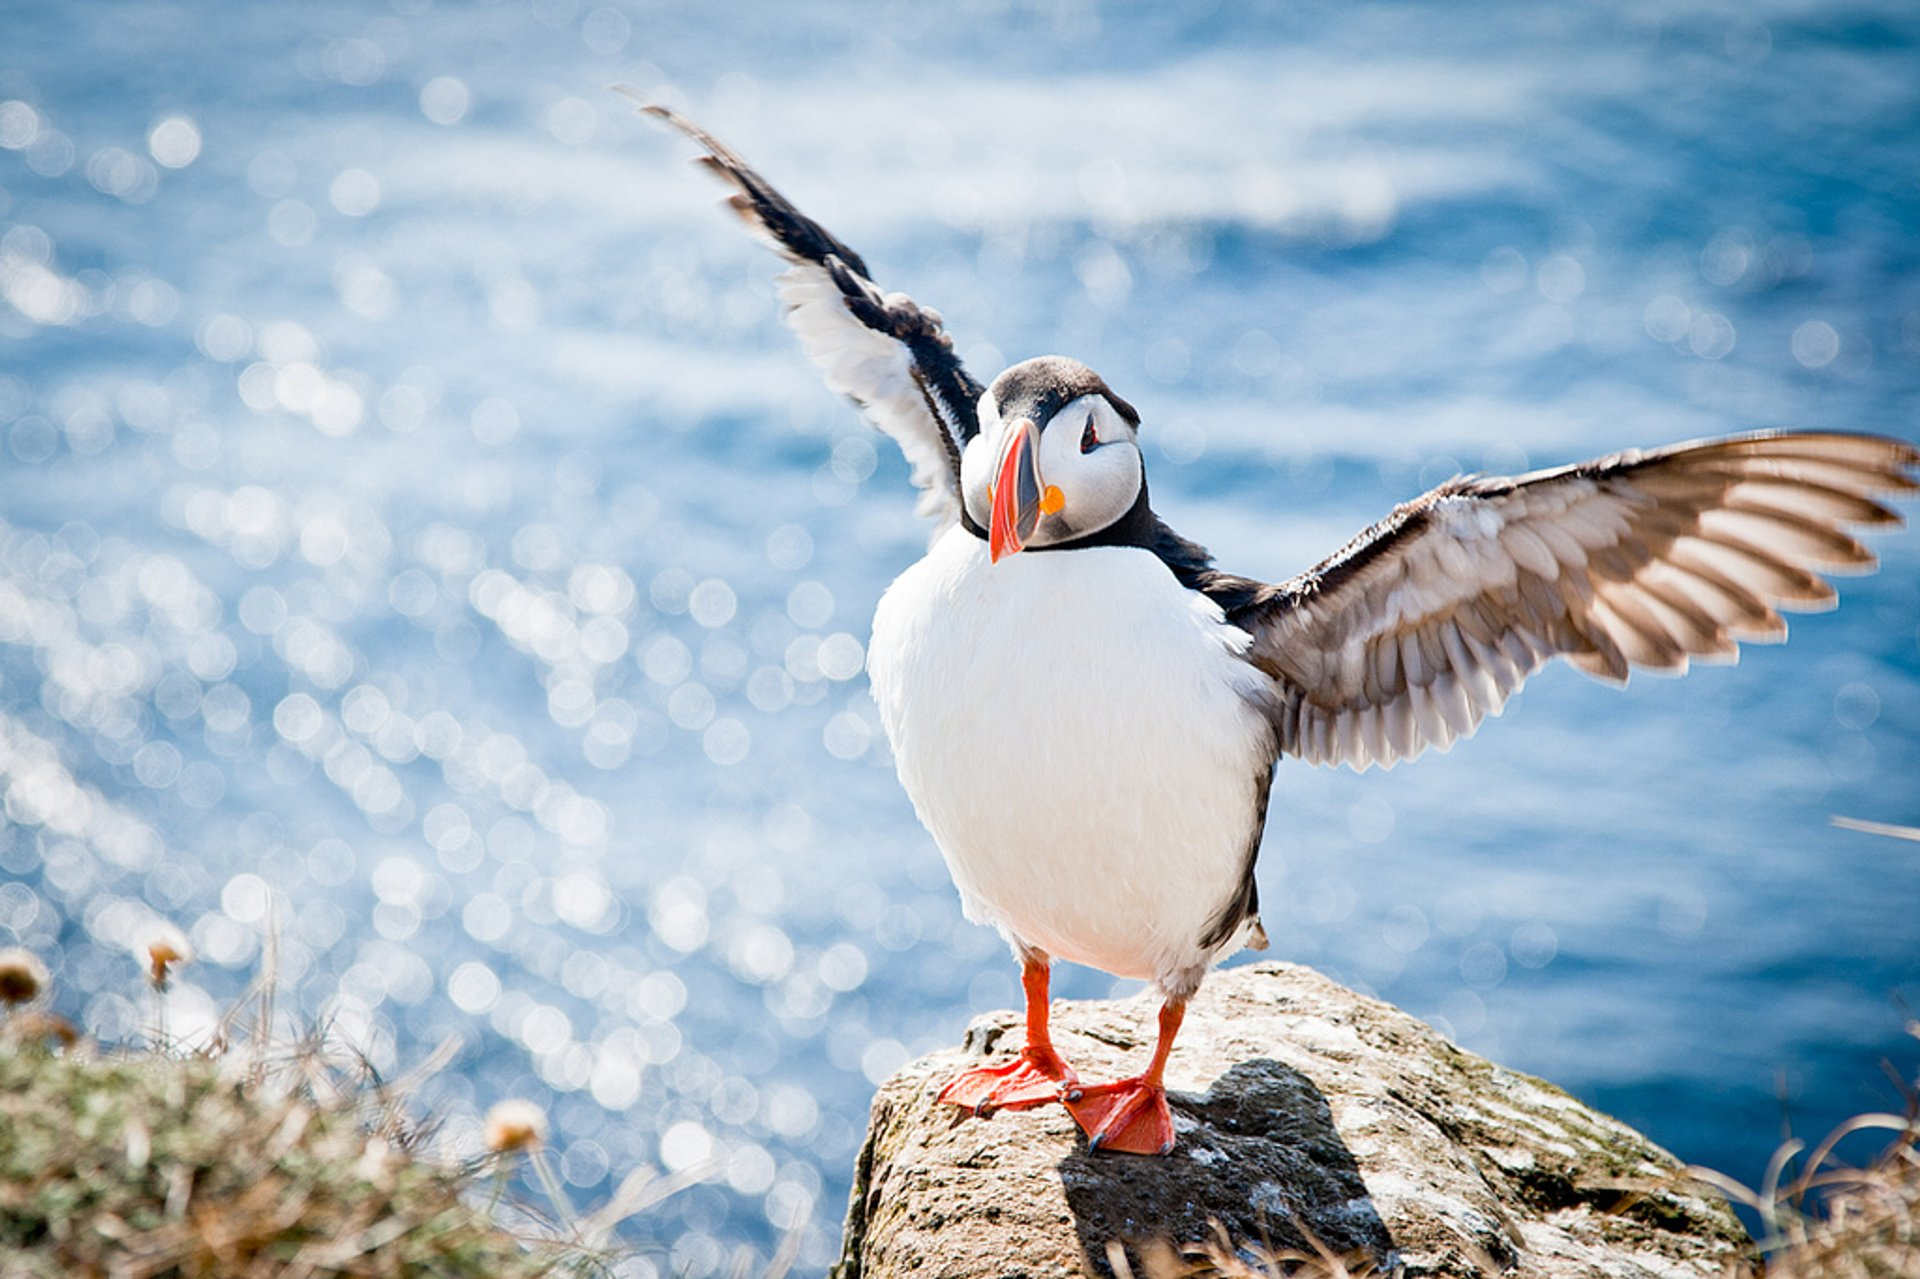 Atlantic Puffins in Iceland 2019 - Best Time